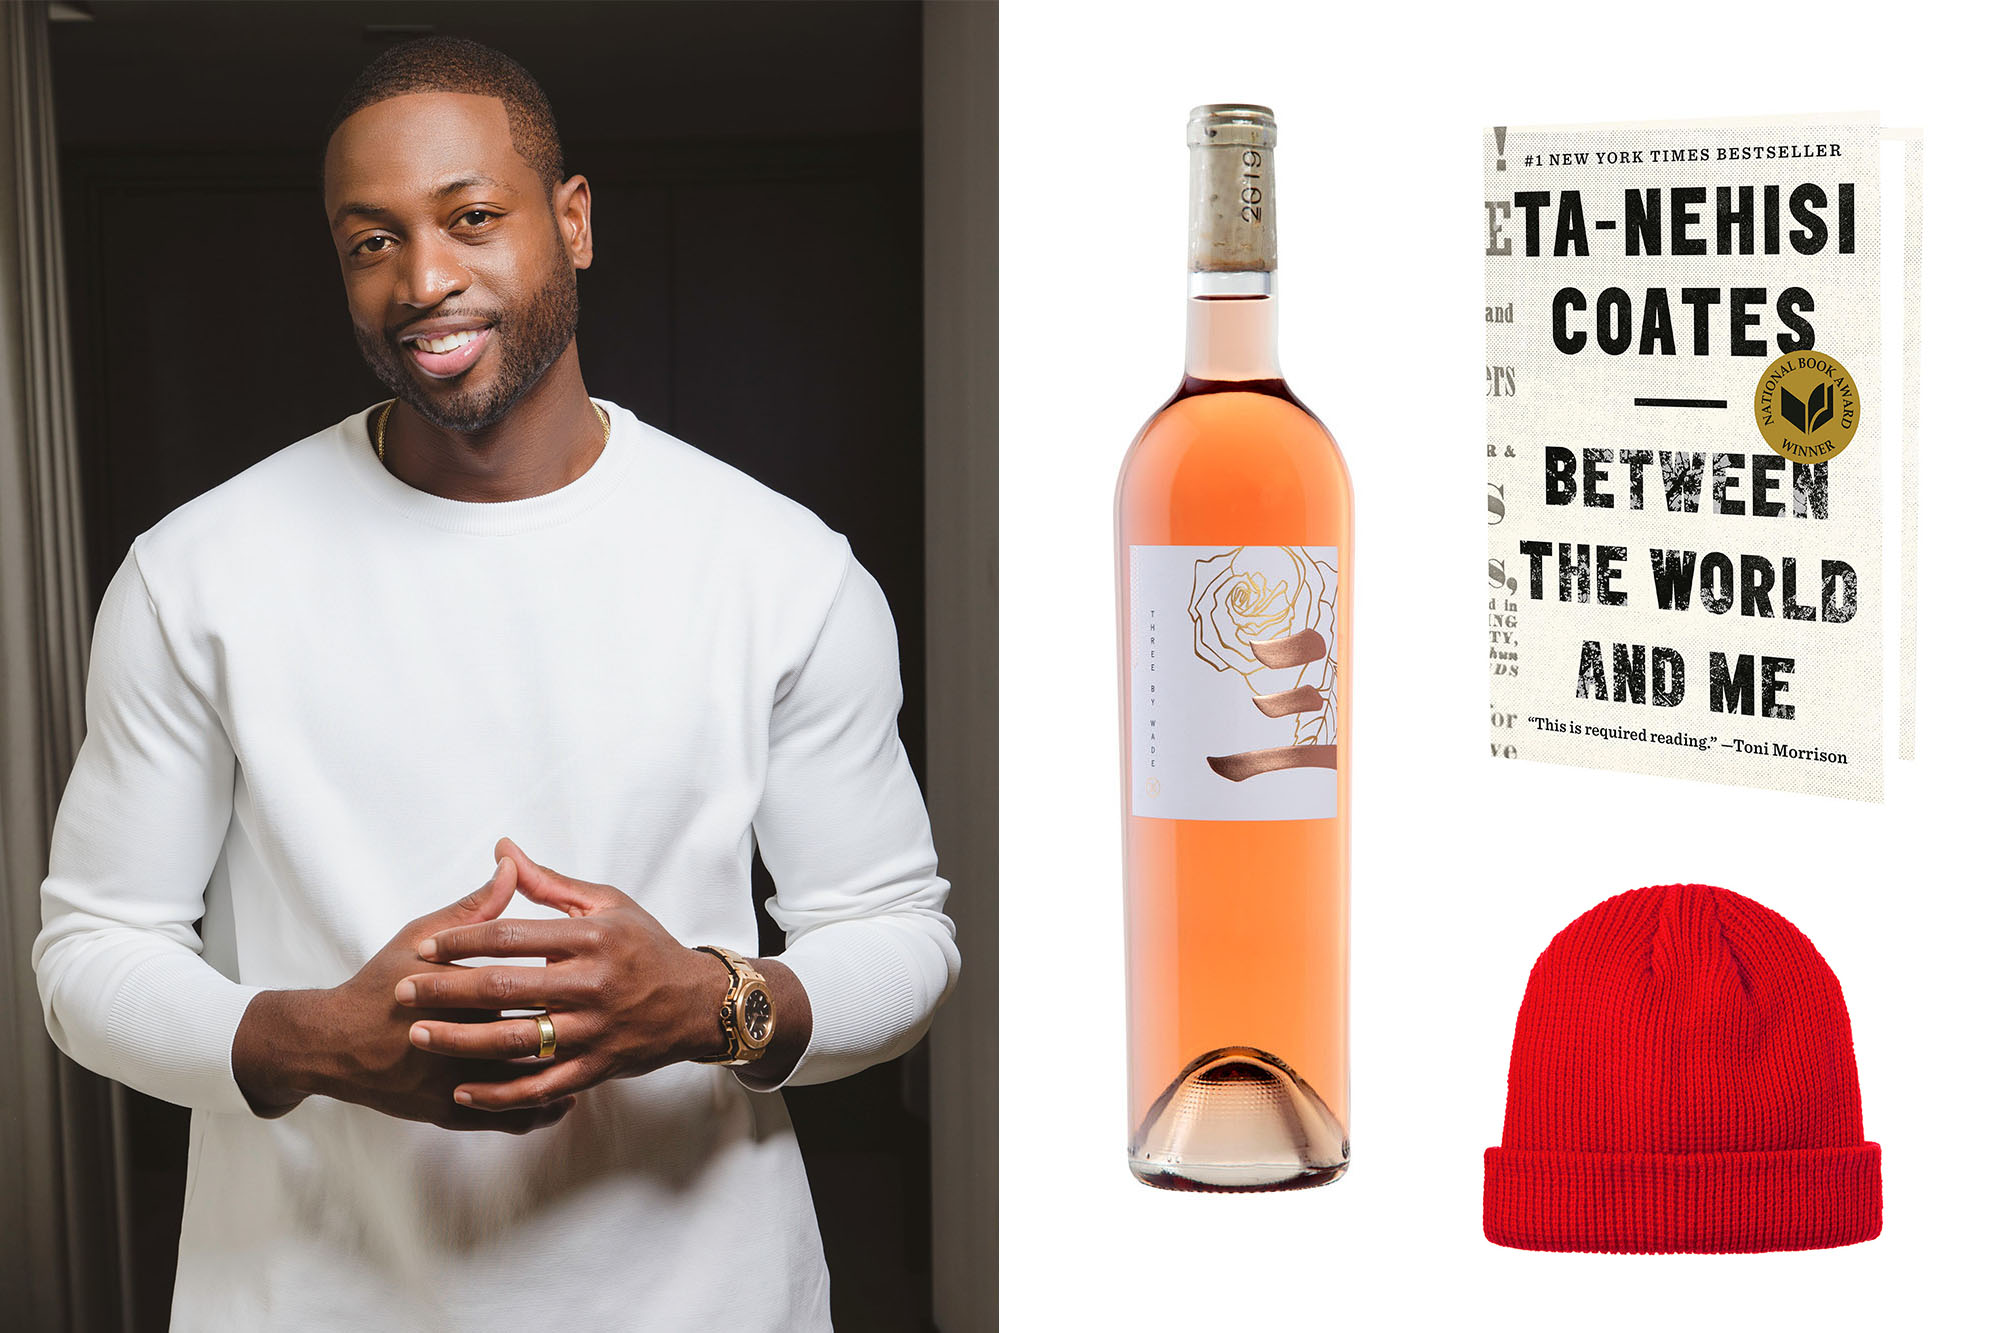 Dwyane Wade's Gifts for Men